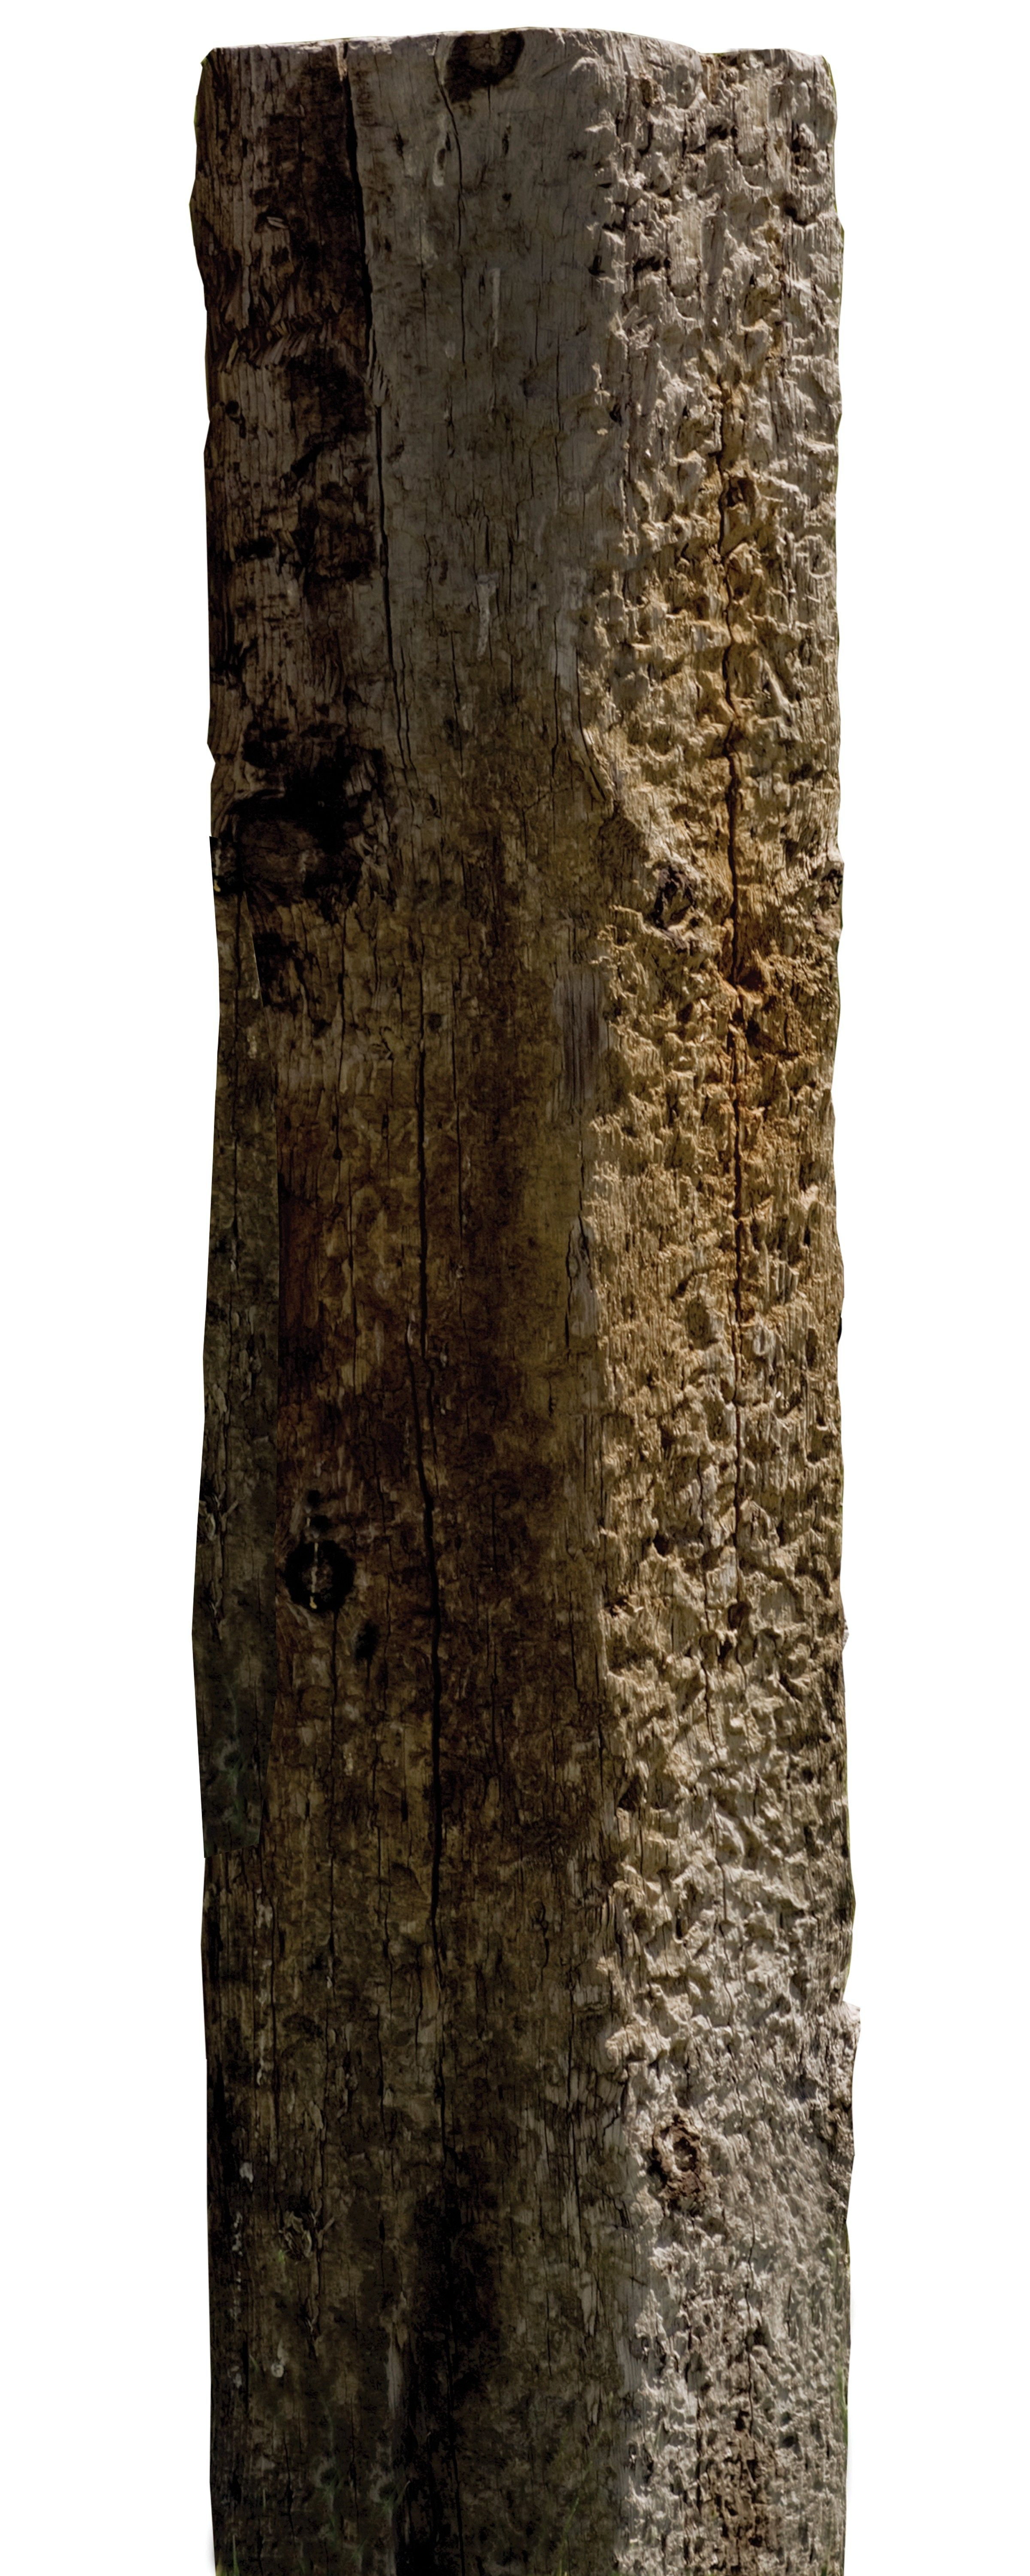 An old hewn oak beam or post.